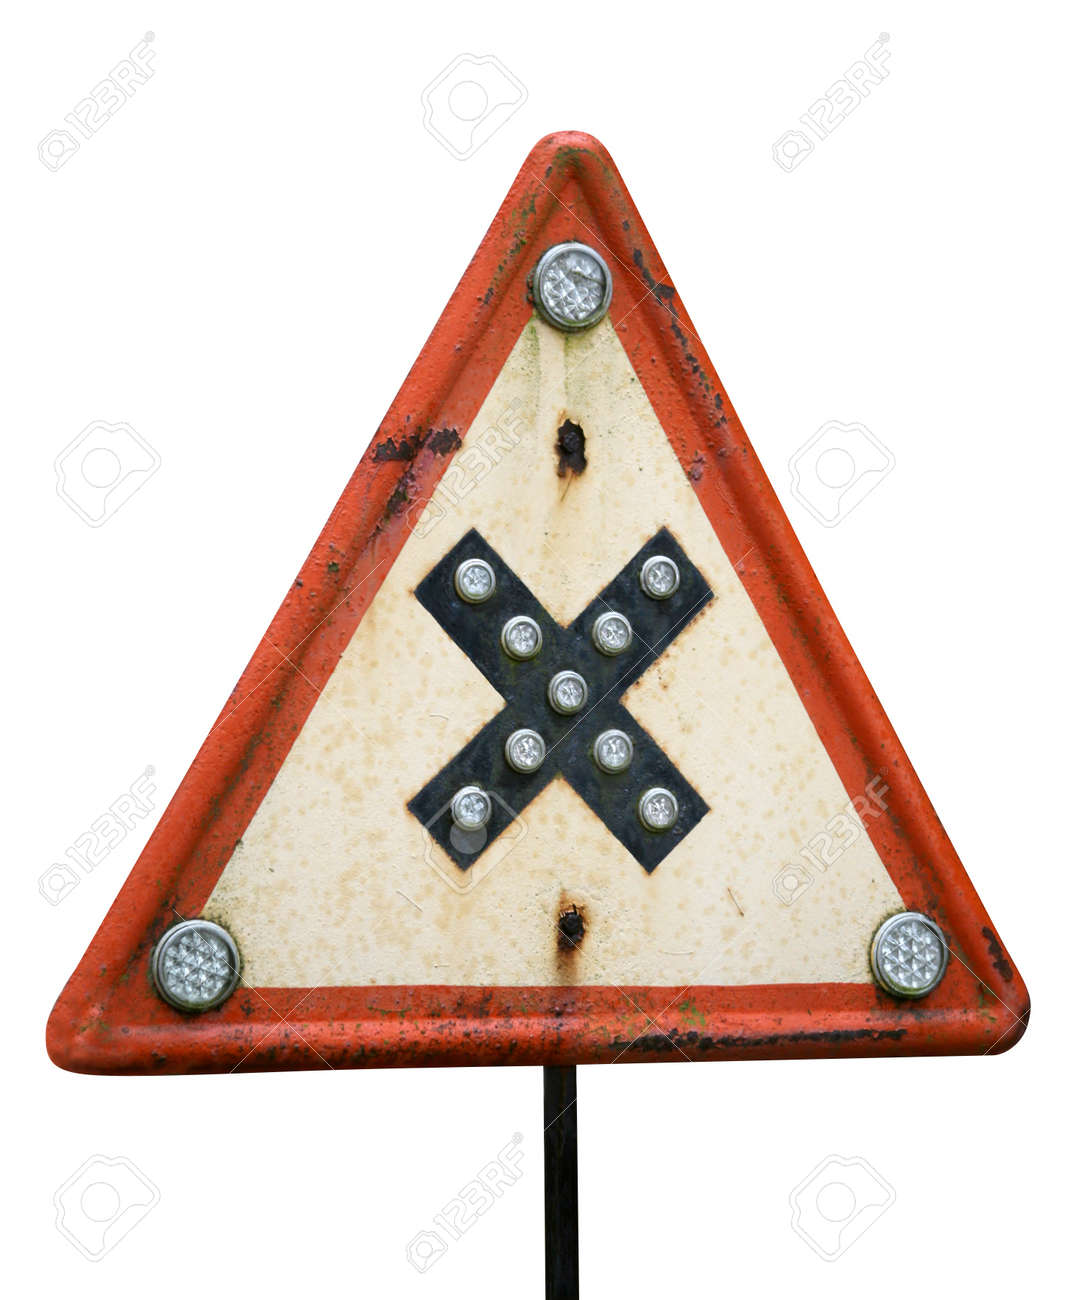 This sign warn of road crossings at even level. Crossroads with right-of-way from the right. This is rare and old sign is located in Latvia. Isolated on white close-up object. Clipping path included. - 10291121